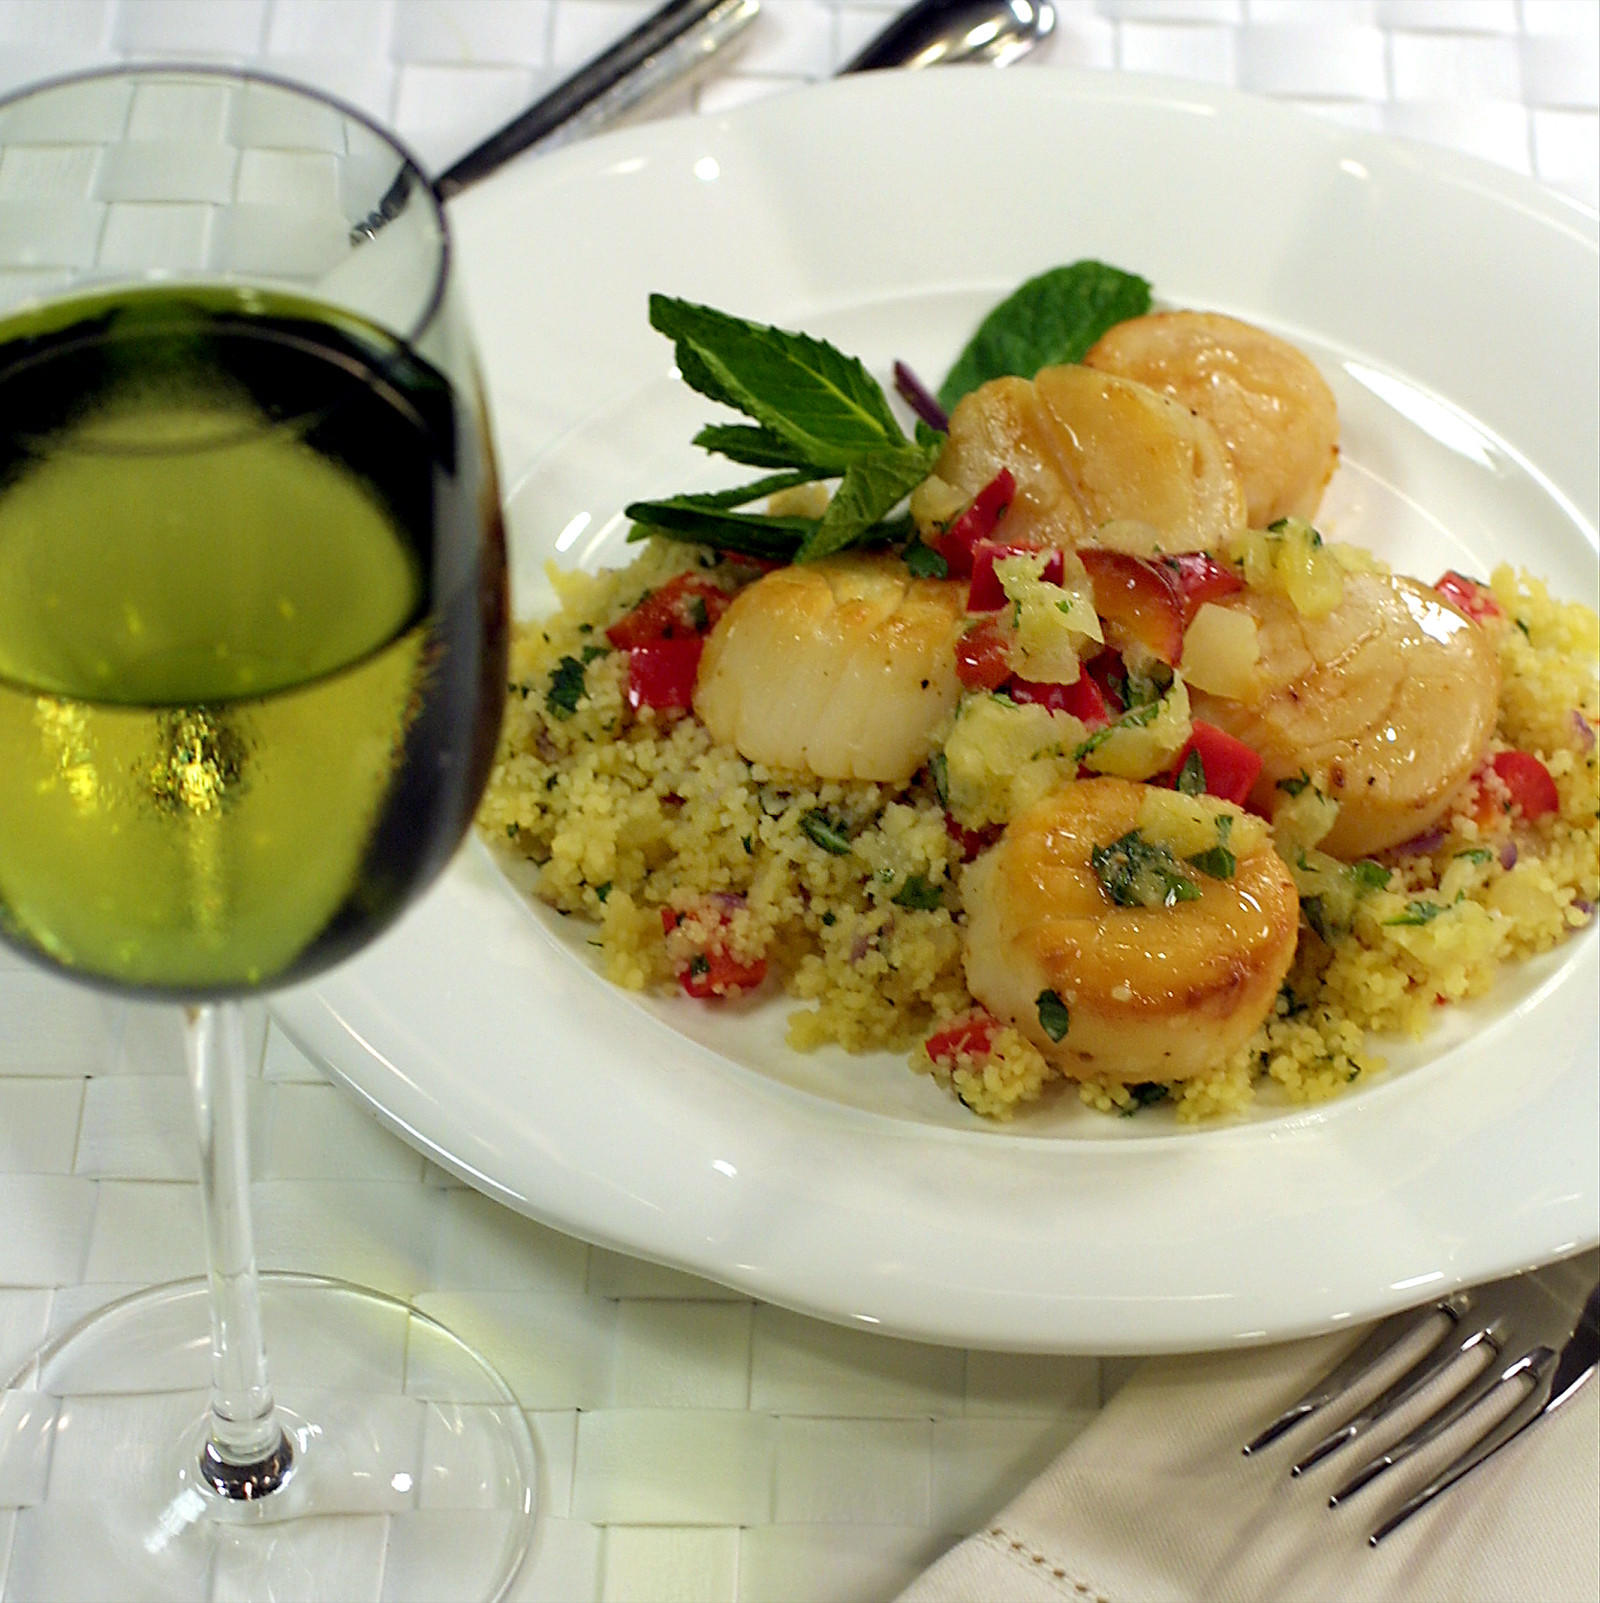 Seared scallops with pineapple salsa couscous